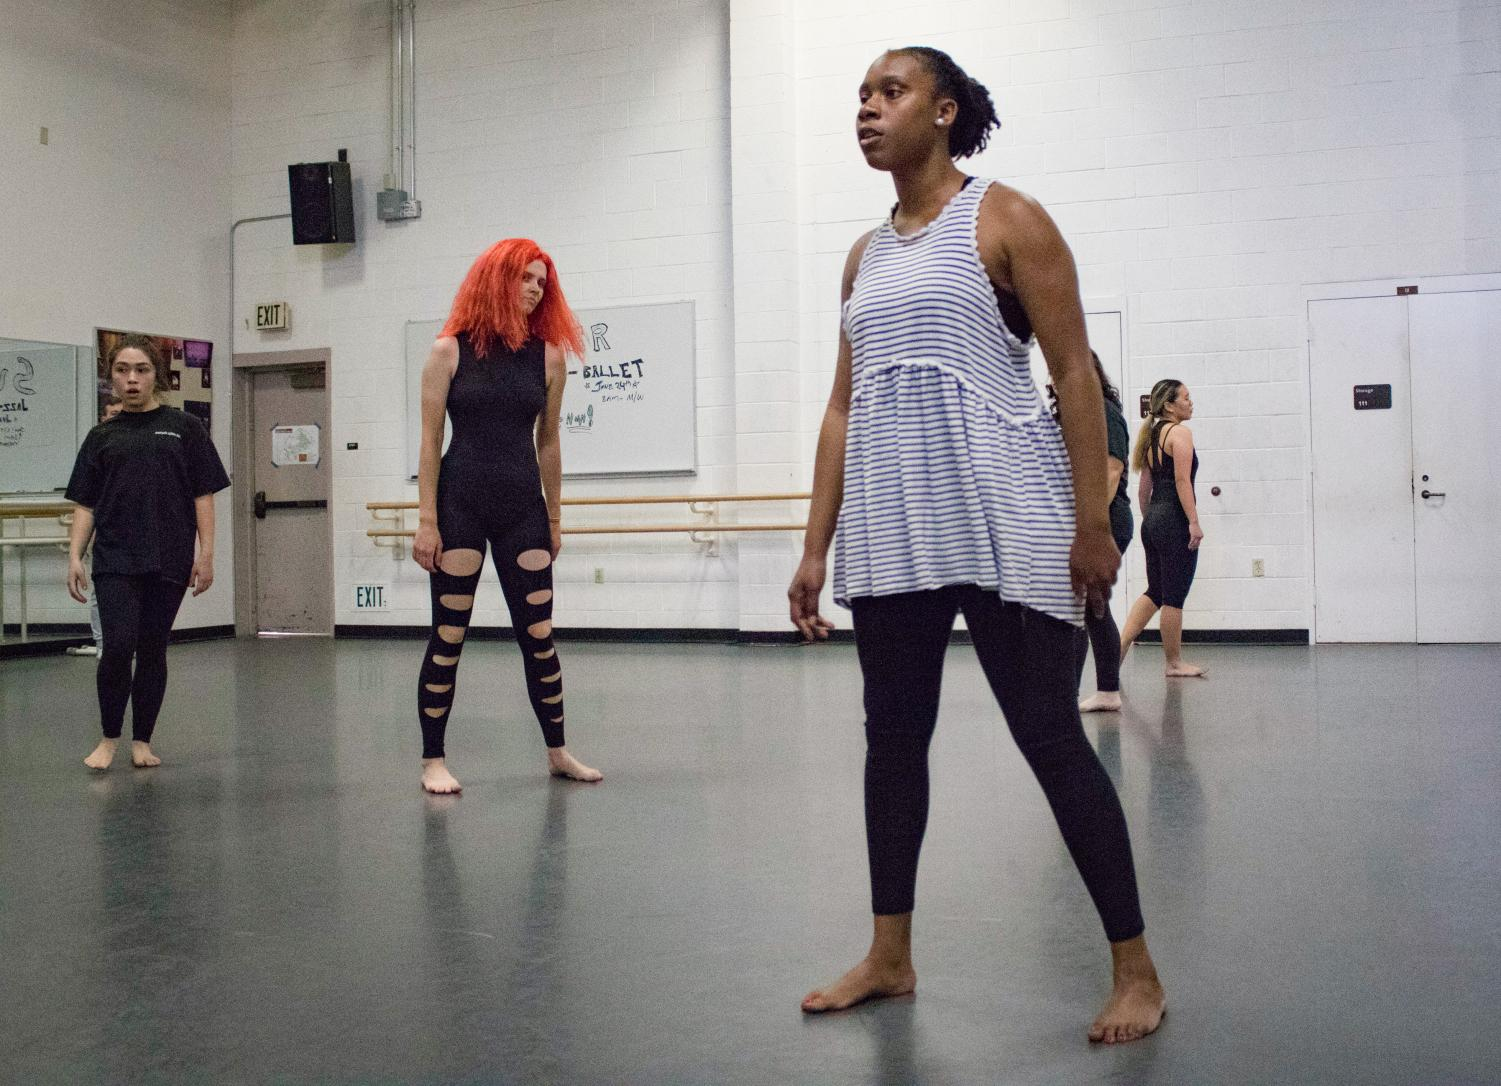 Shandria Blackmon, 27, stands ready to make the next move during Robert Salas's modern dance class last week. The class practices their eerie dance piece, which the dancers call